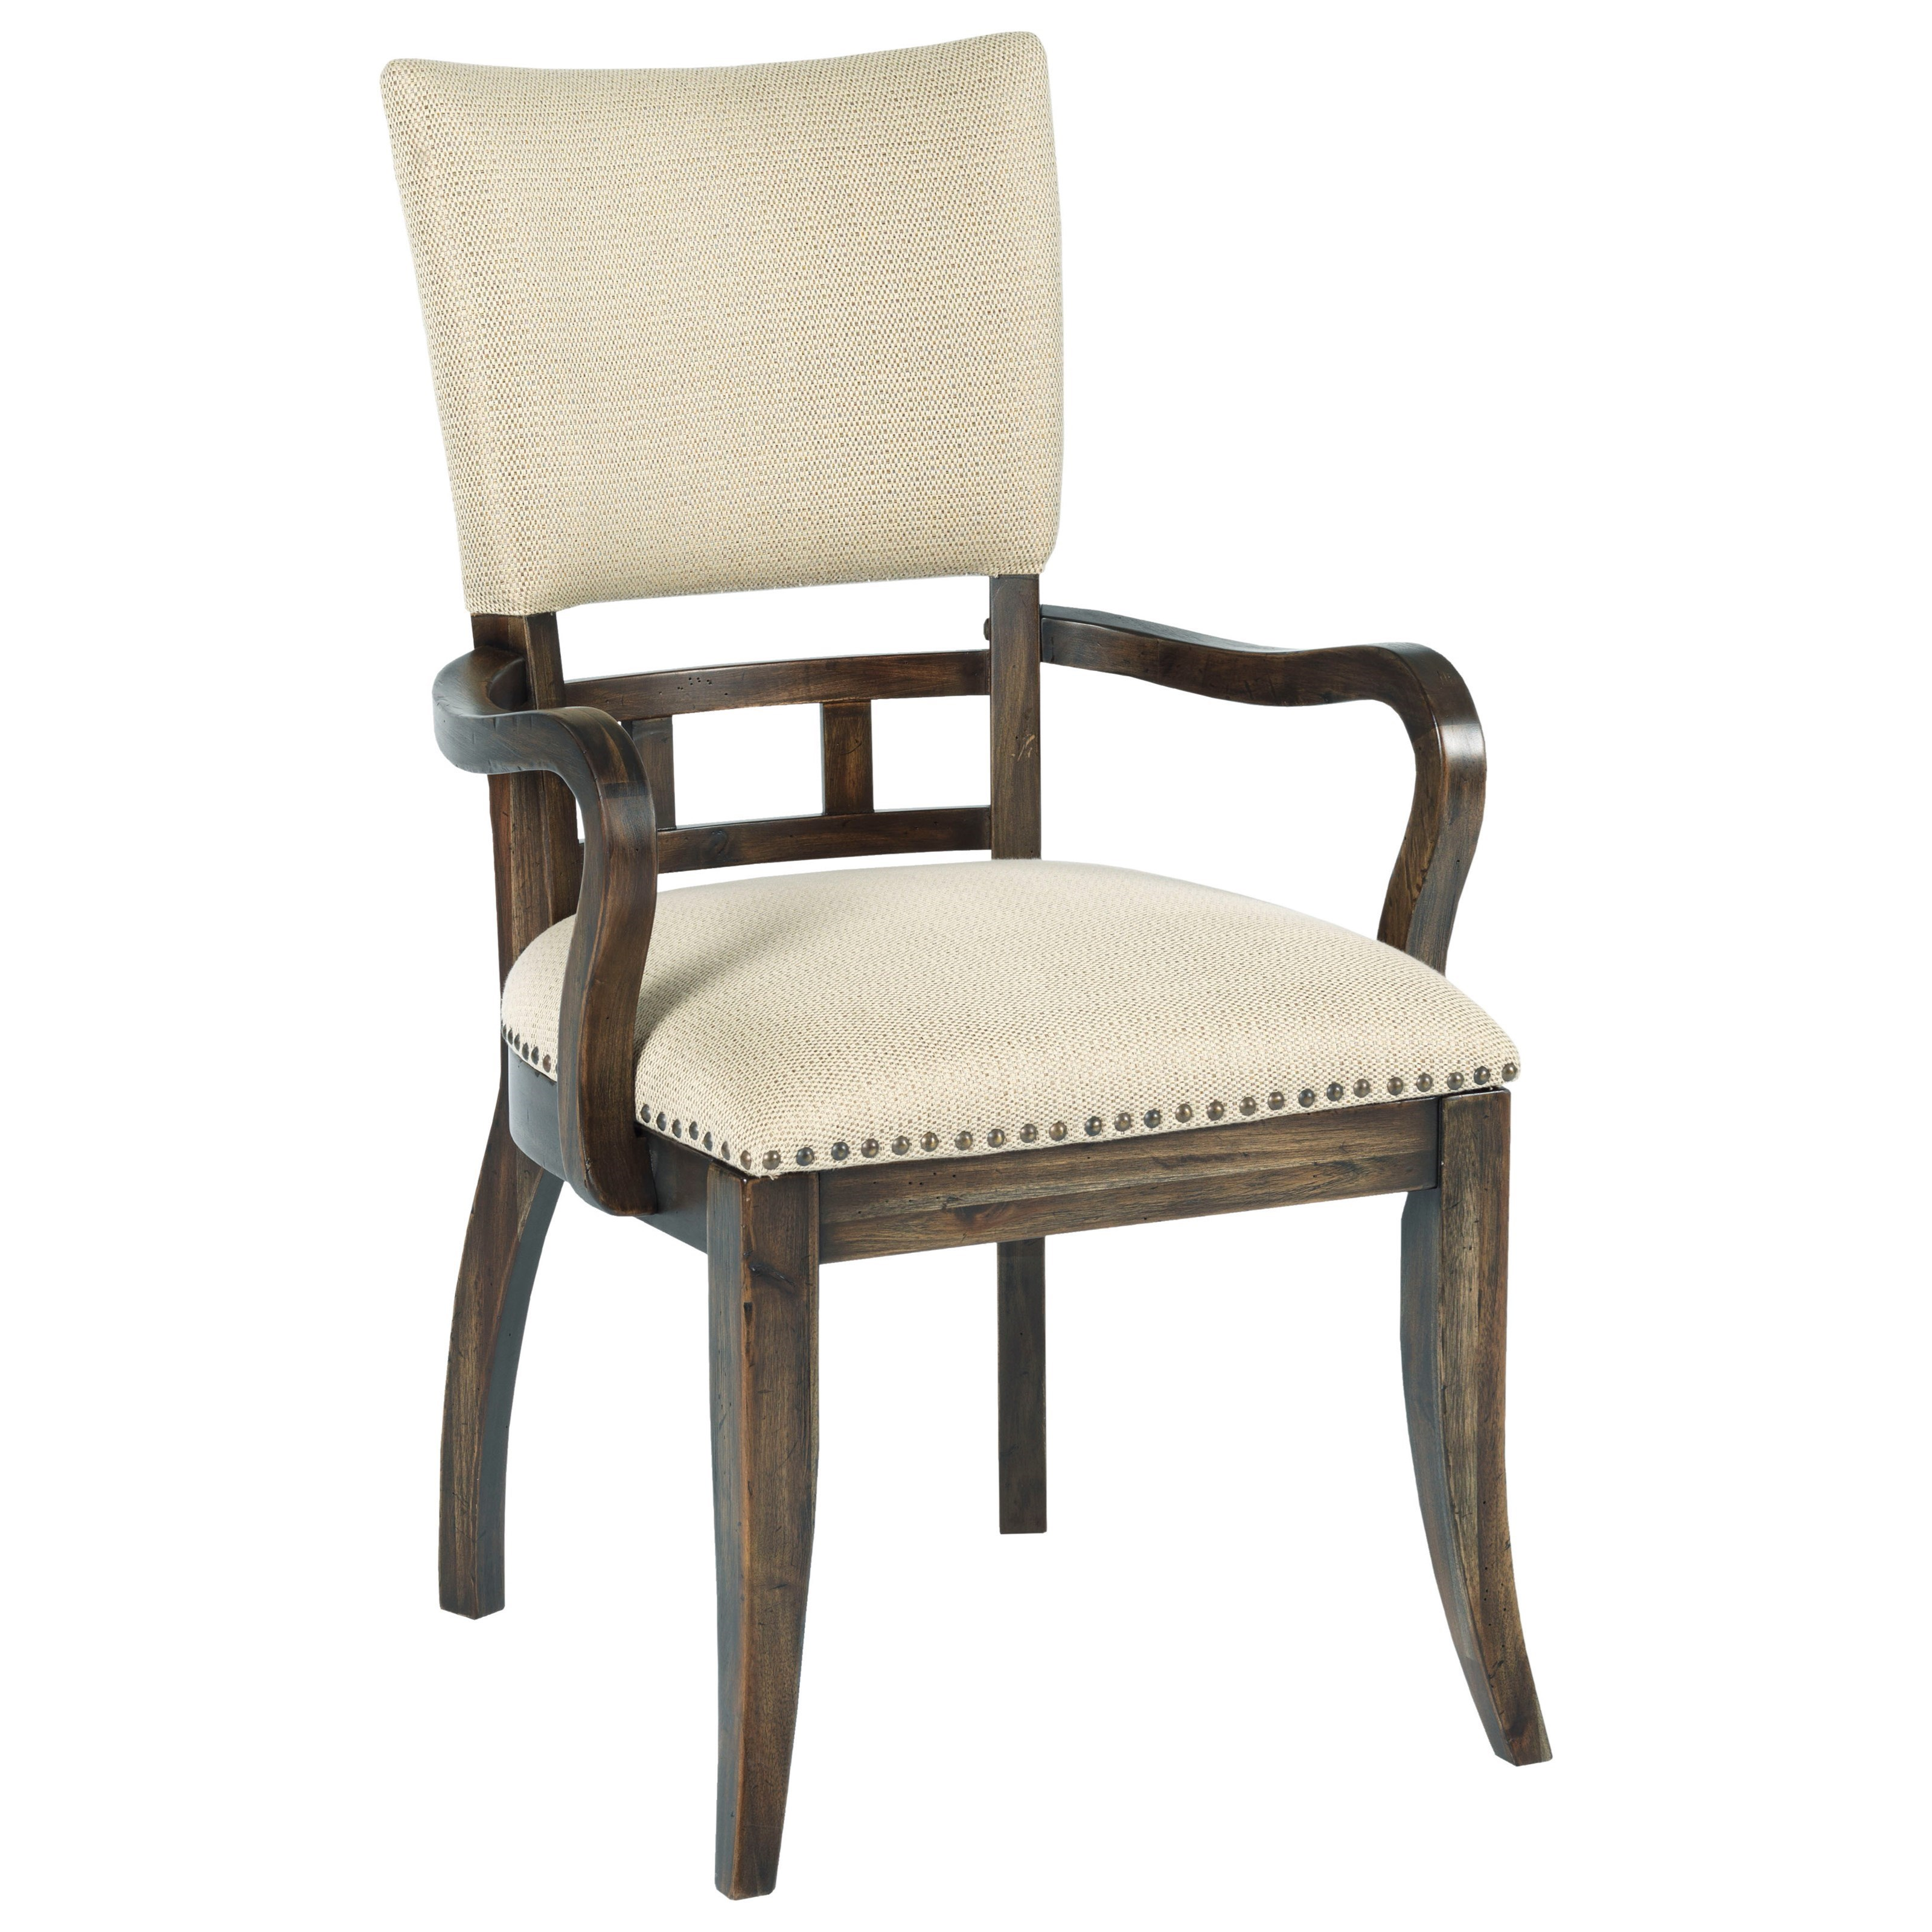 Kincaid furniture wildfire tweed upholstered arm chair with nailhead trim belfort furniture - Nailhead dining room chairs ...